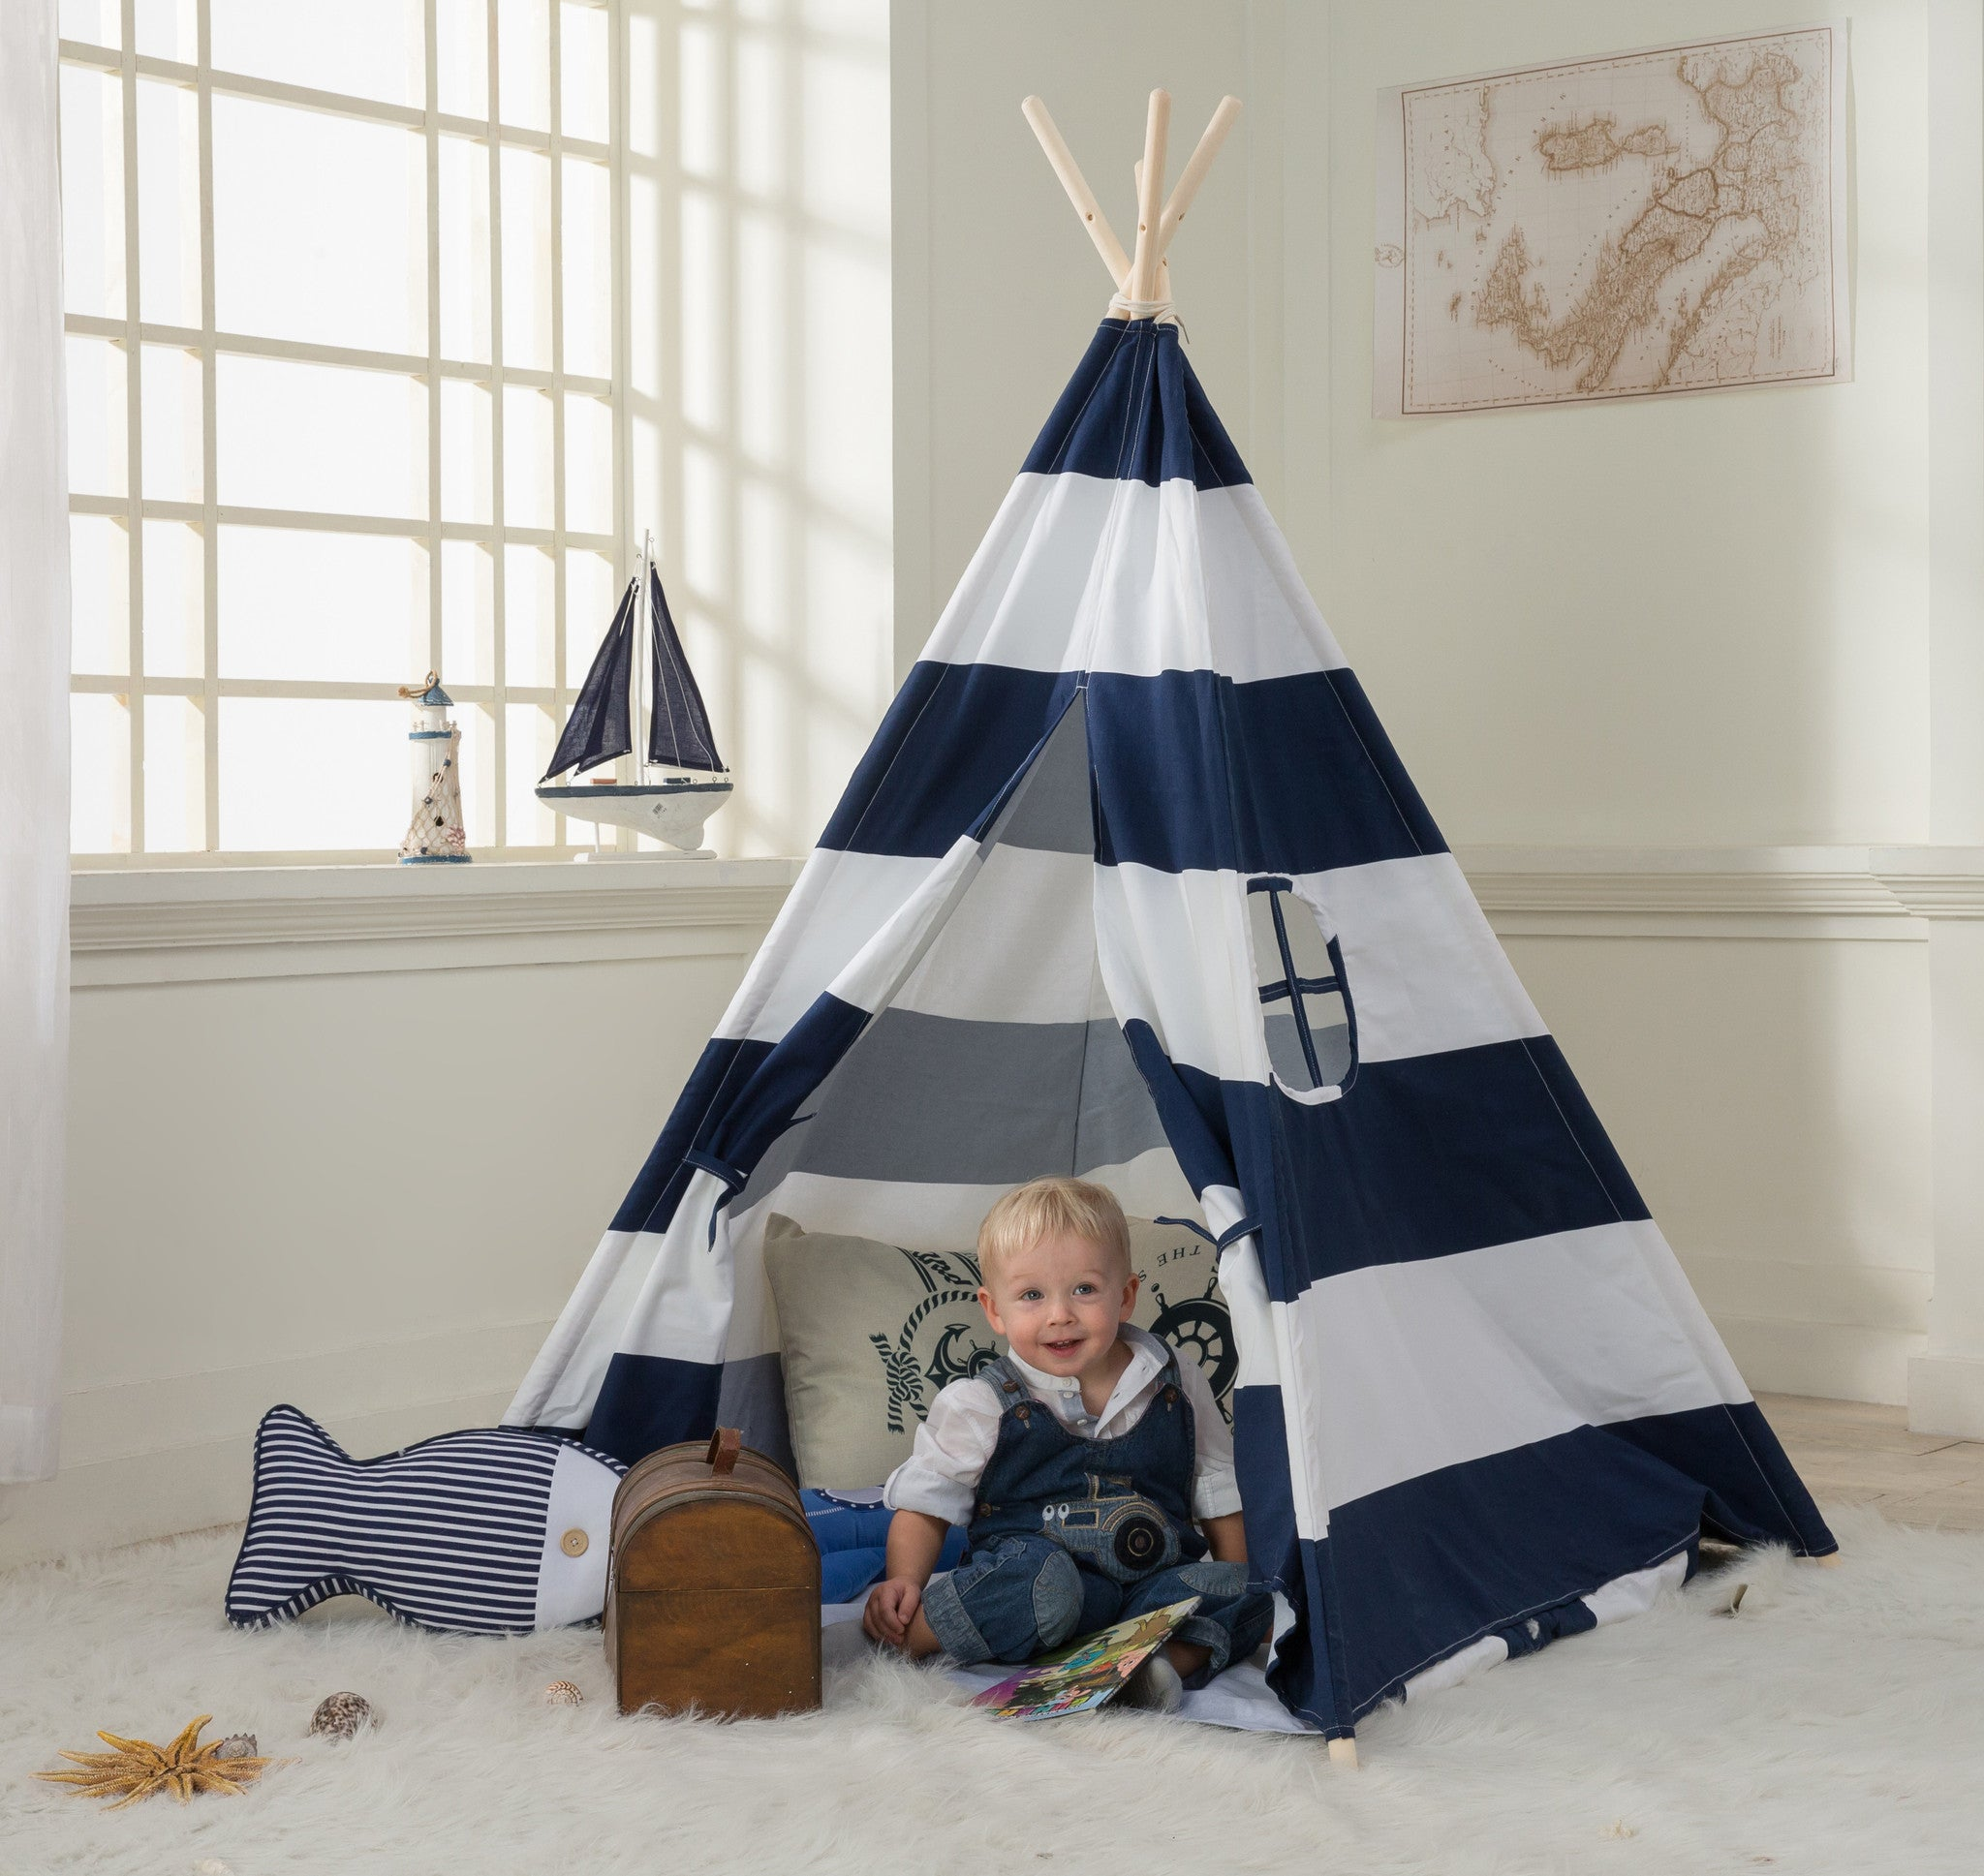 Dalosdream Kids Teepee Tent Navy Striped With Floor Mattress And